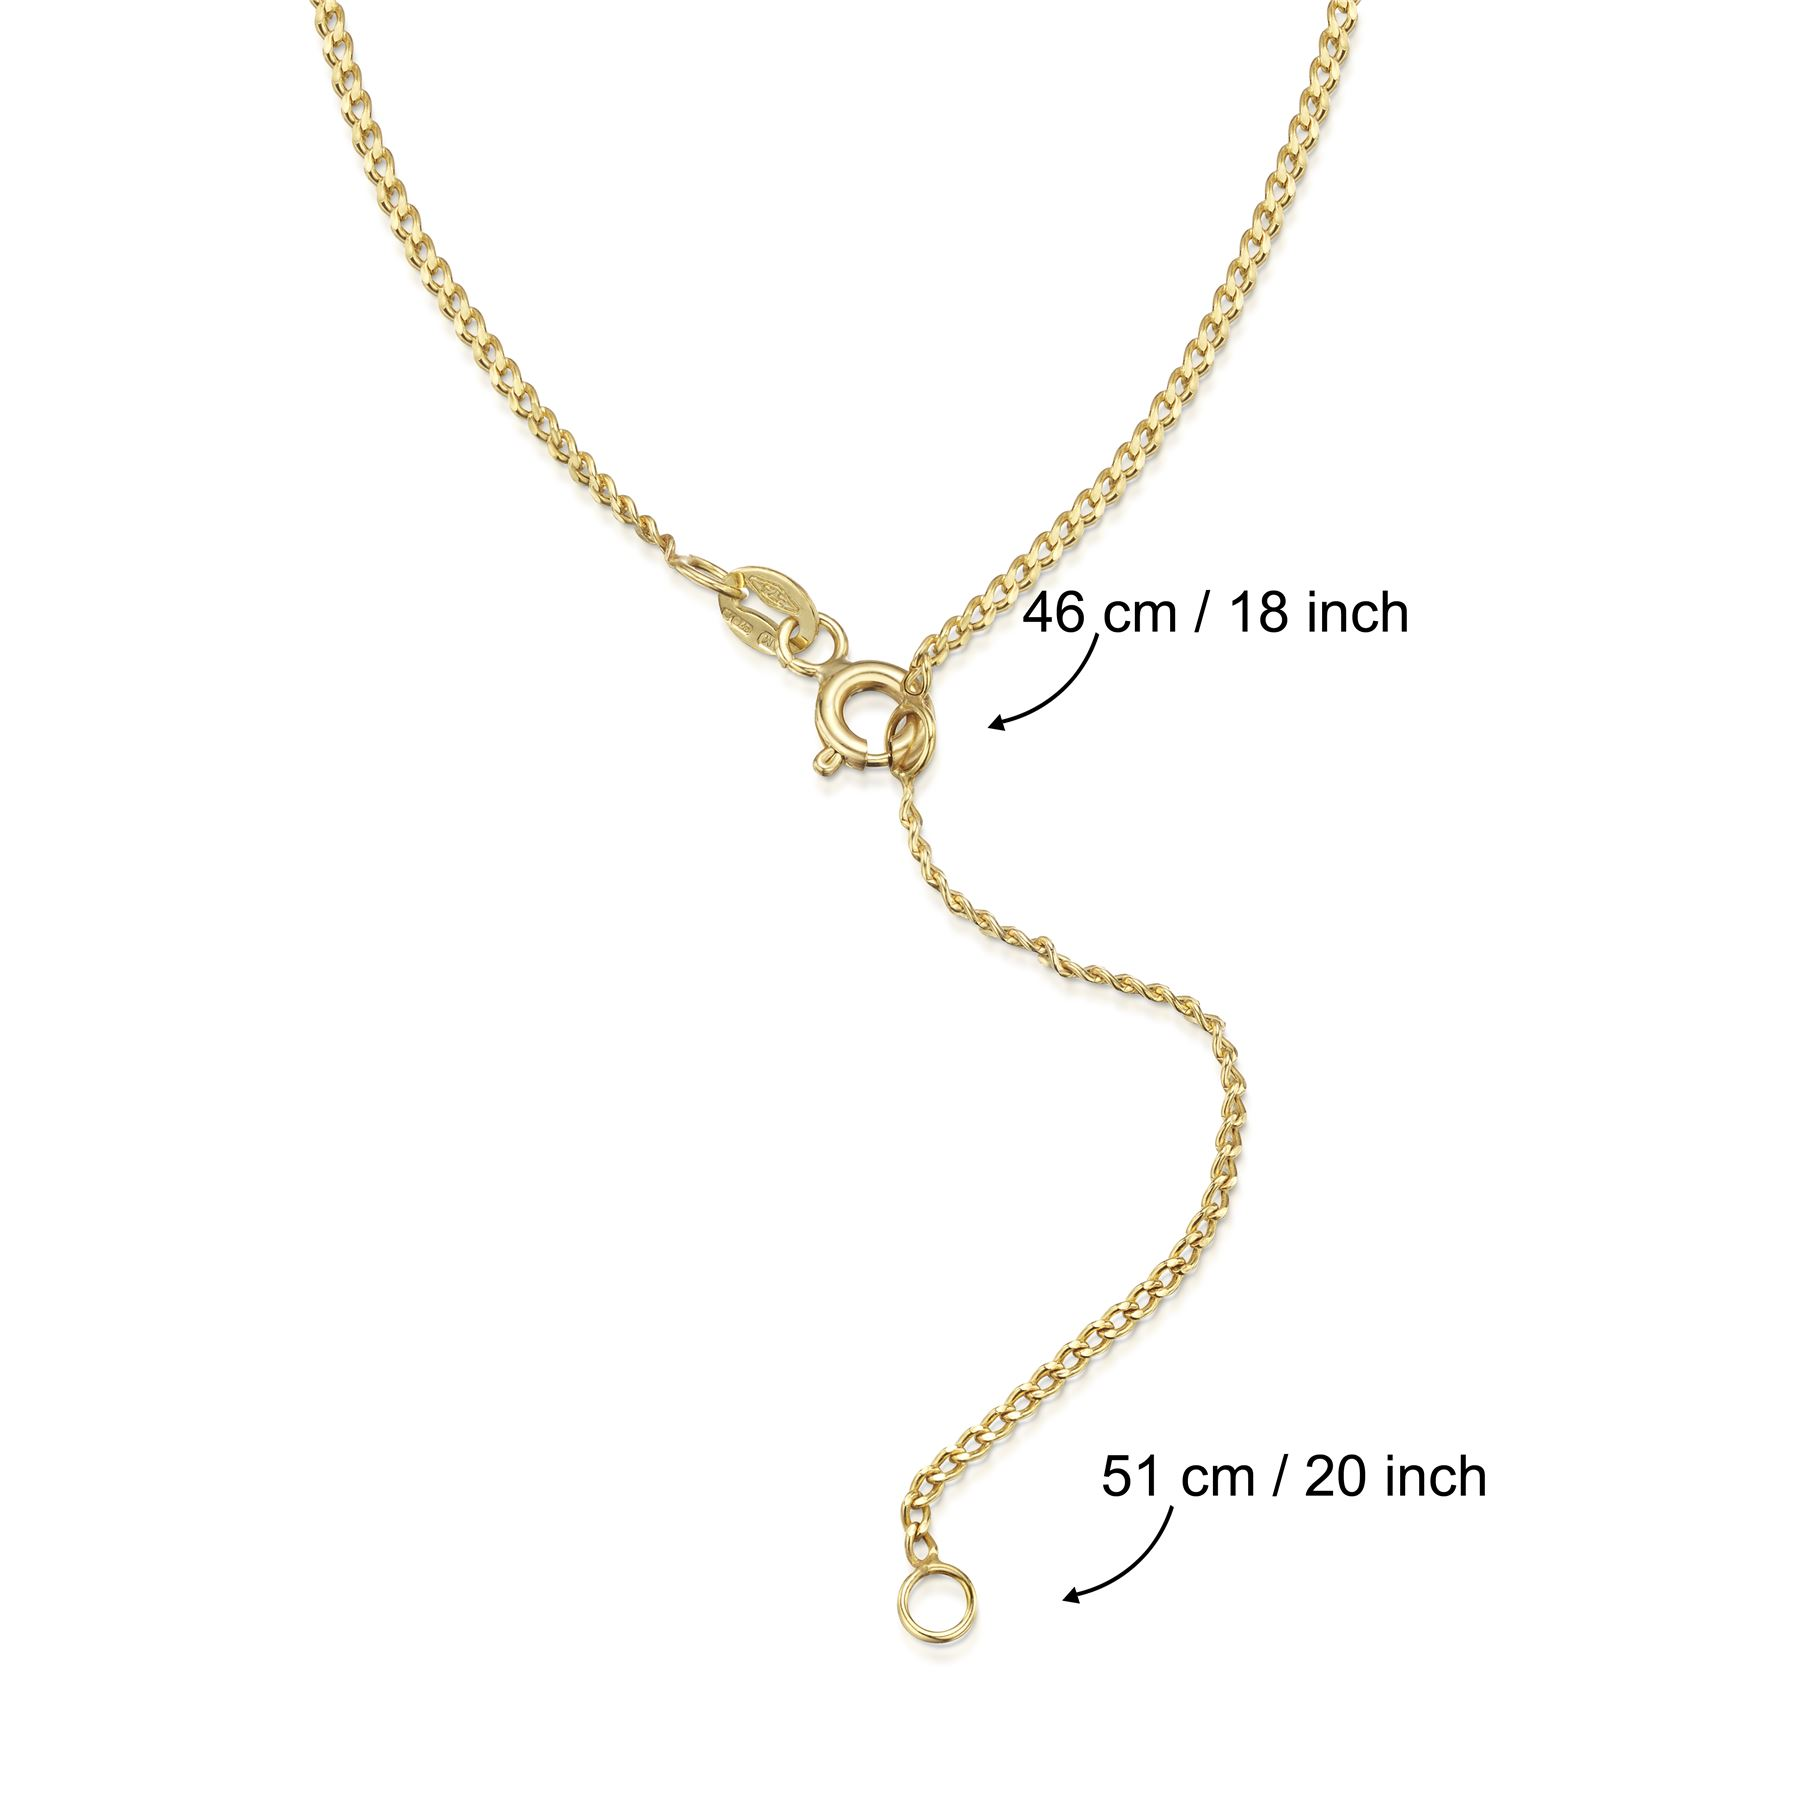 Amberta-Genuine-Real-Yellow-Gold-9K-Solid-Strong-Adjustable-Necklace-Chain-Italy thumbnail 8